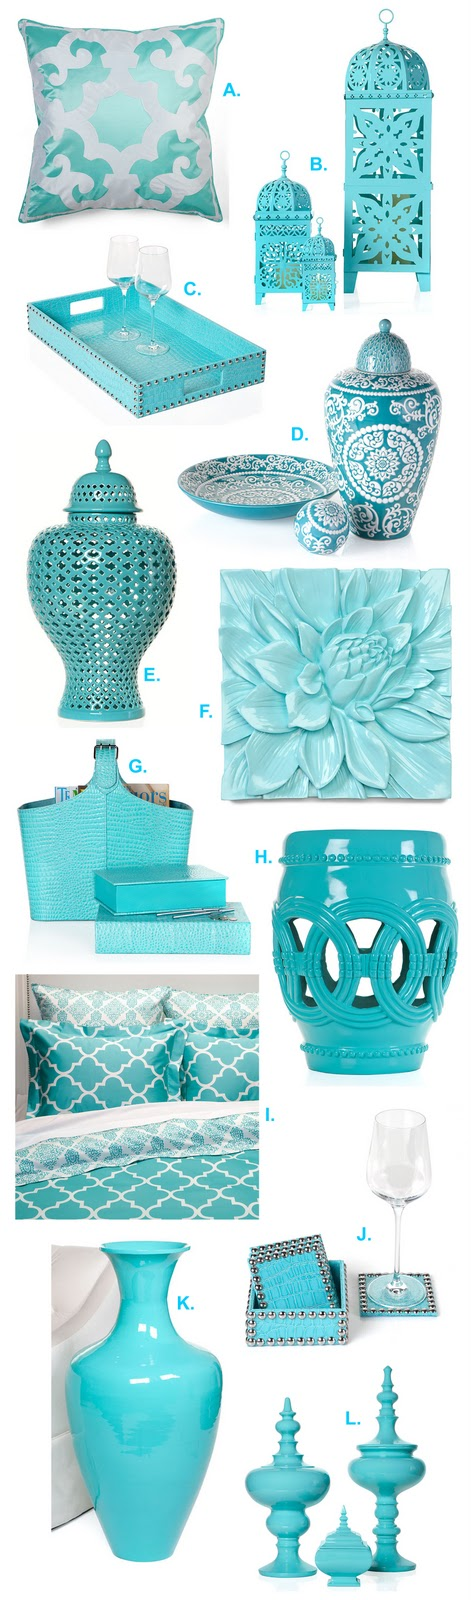 A designer a contractor a for aquamarine for Turquoise blue bathroom accessories